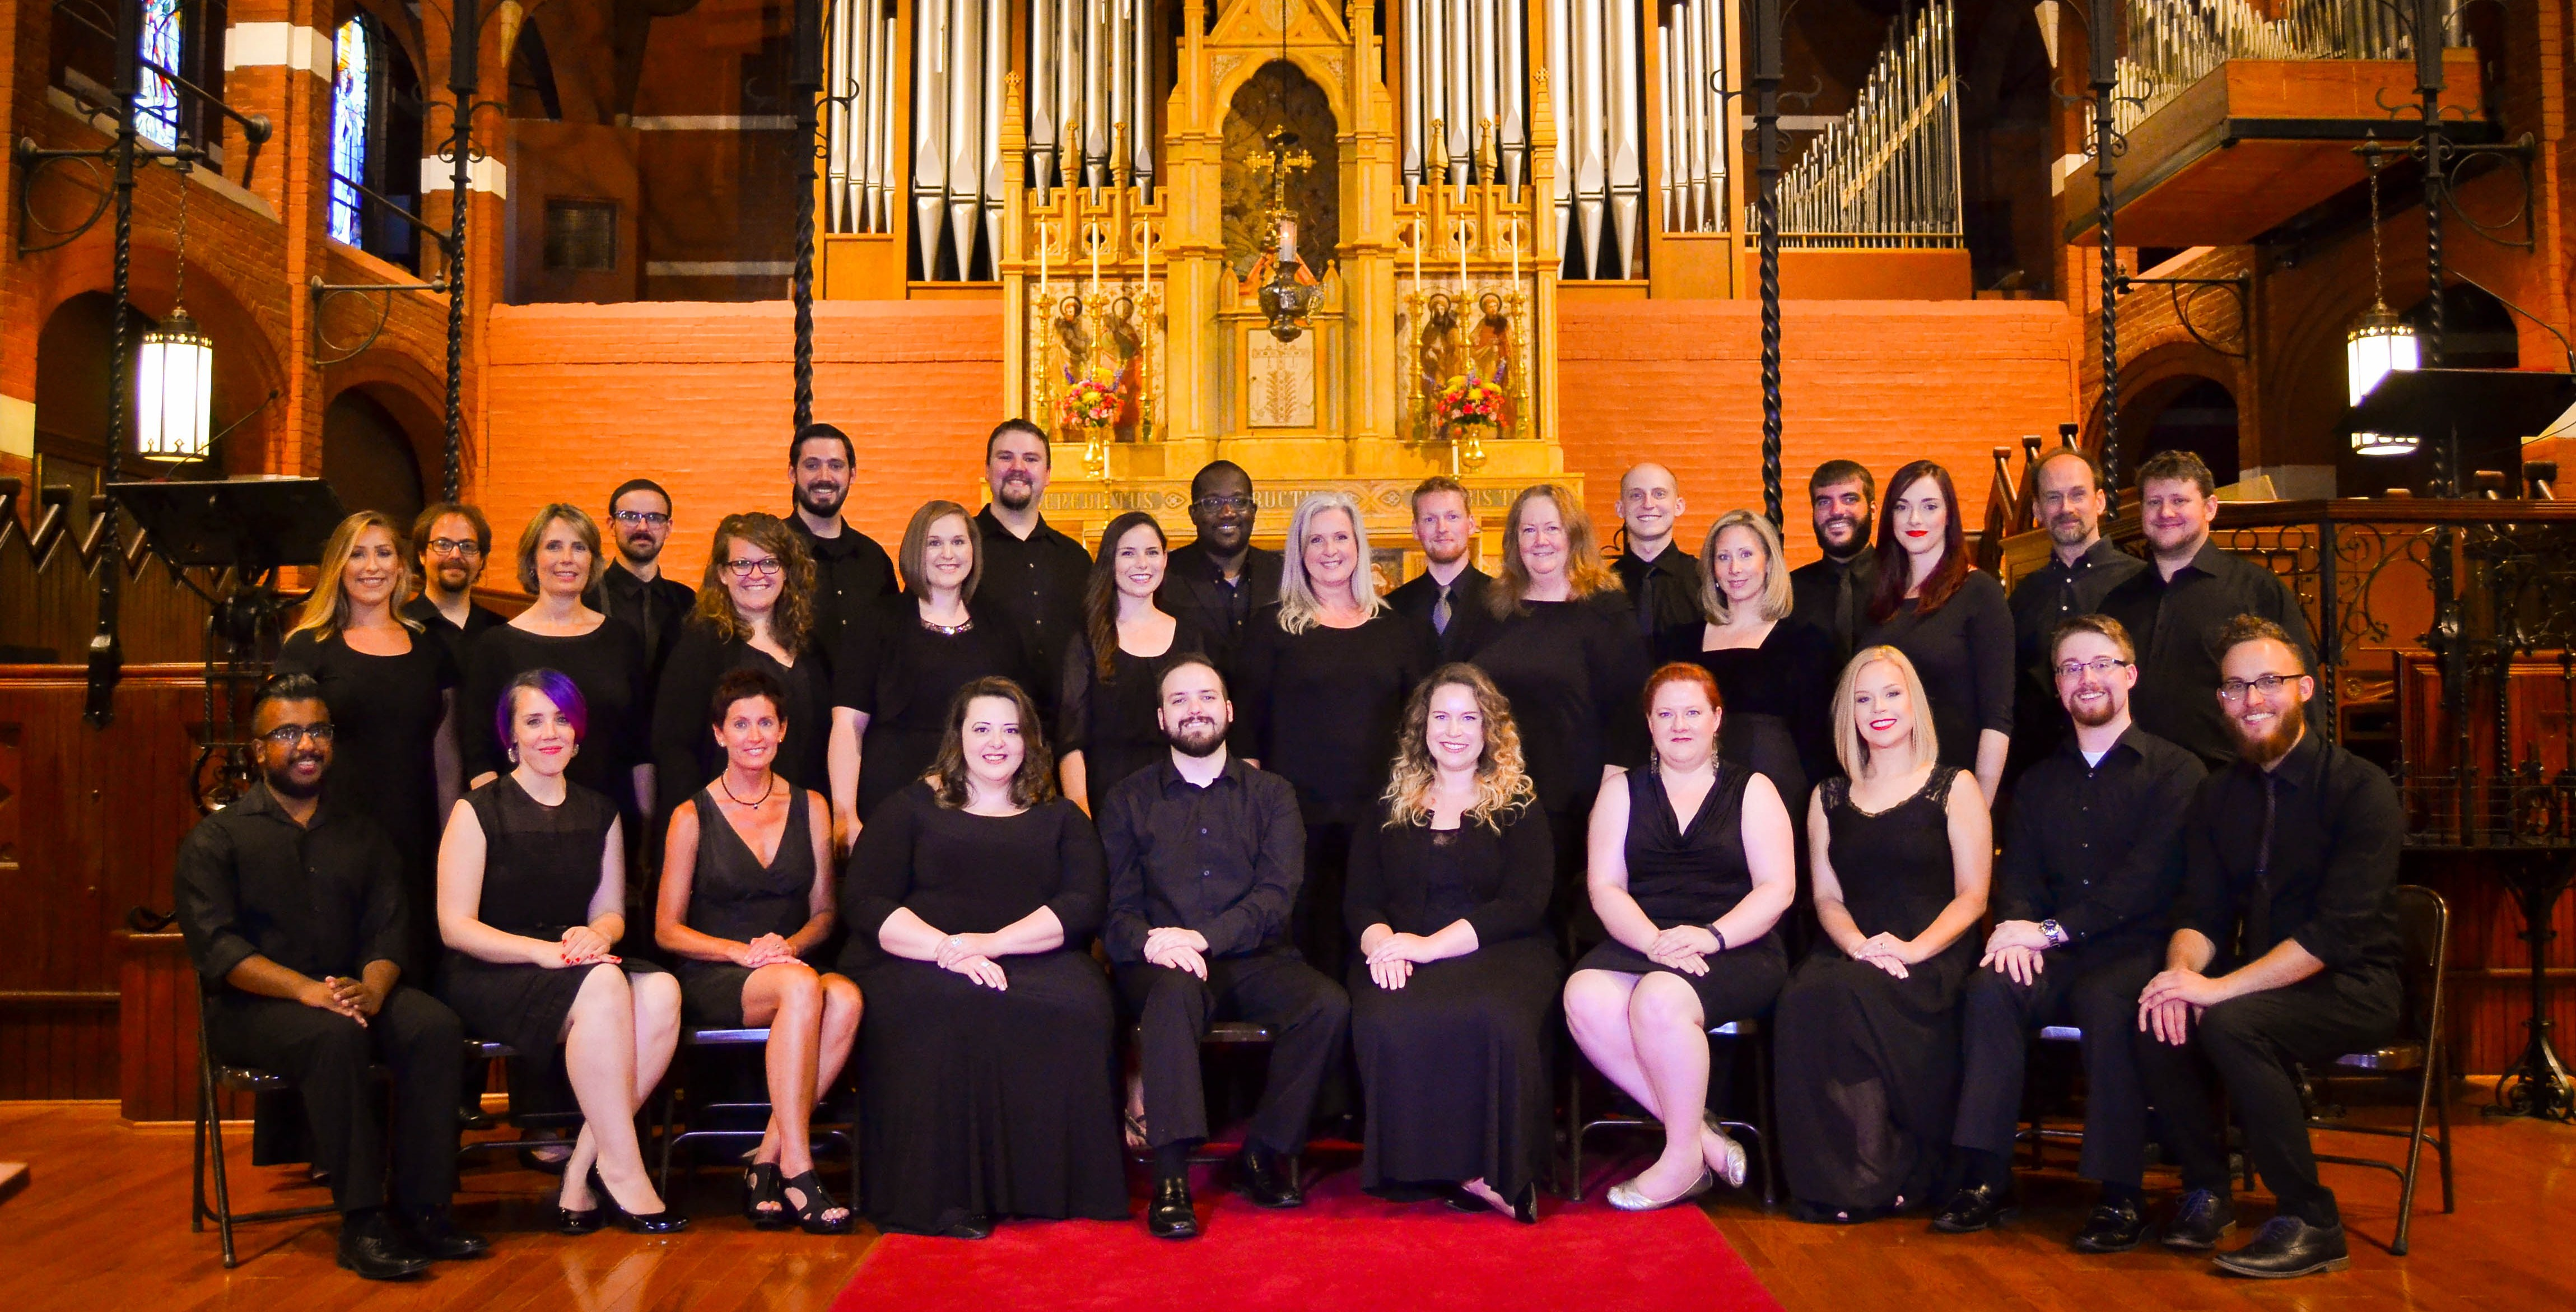 IF YOU BUILD IT, WILL THEY COME? New choir amazed by local interest